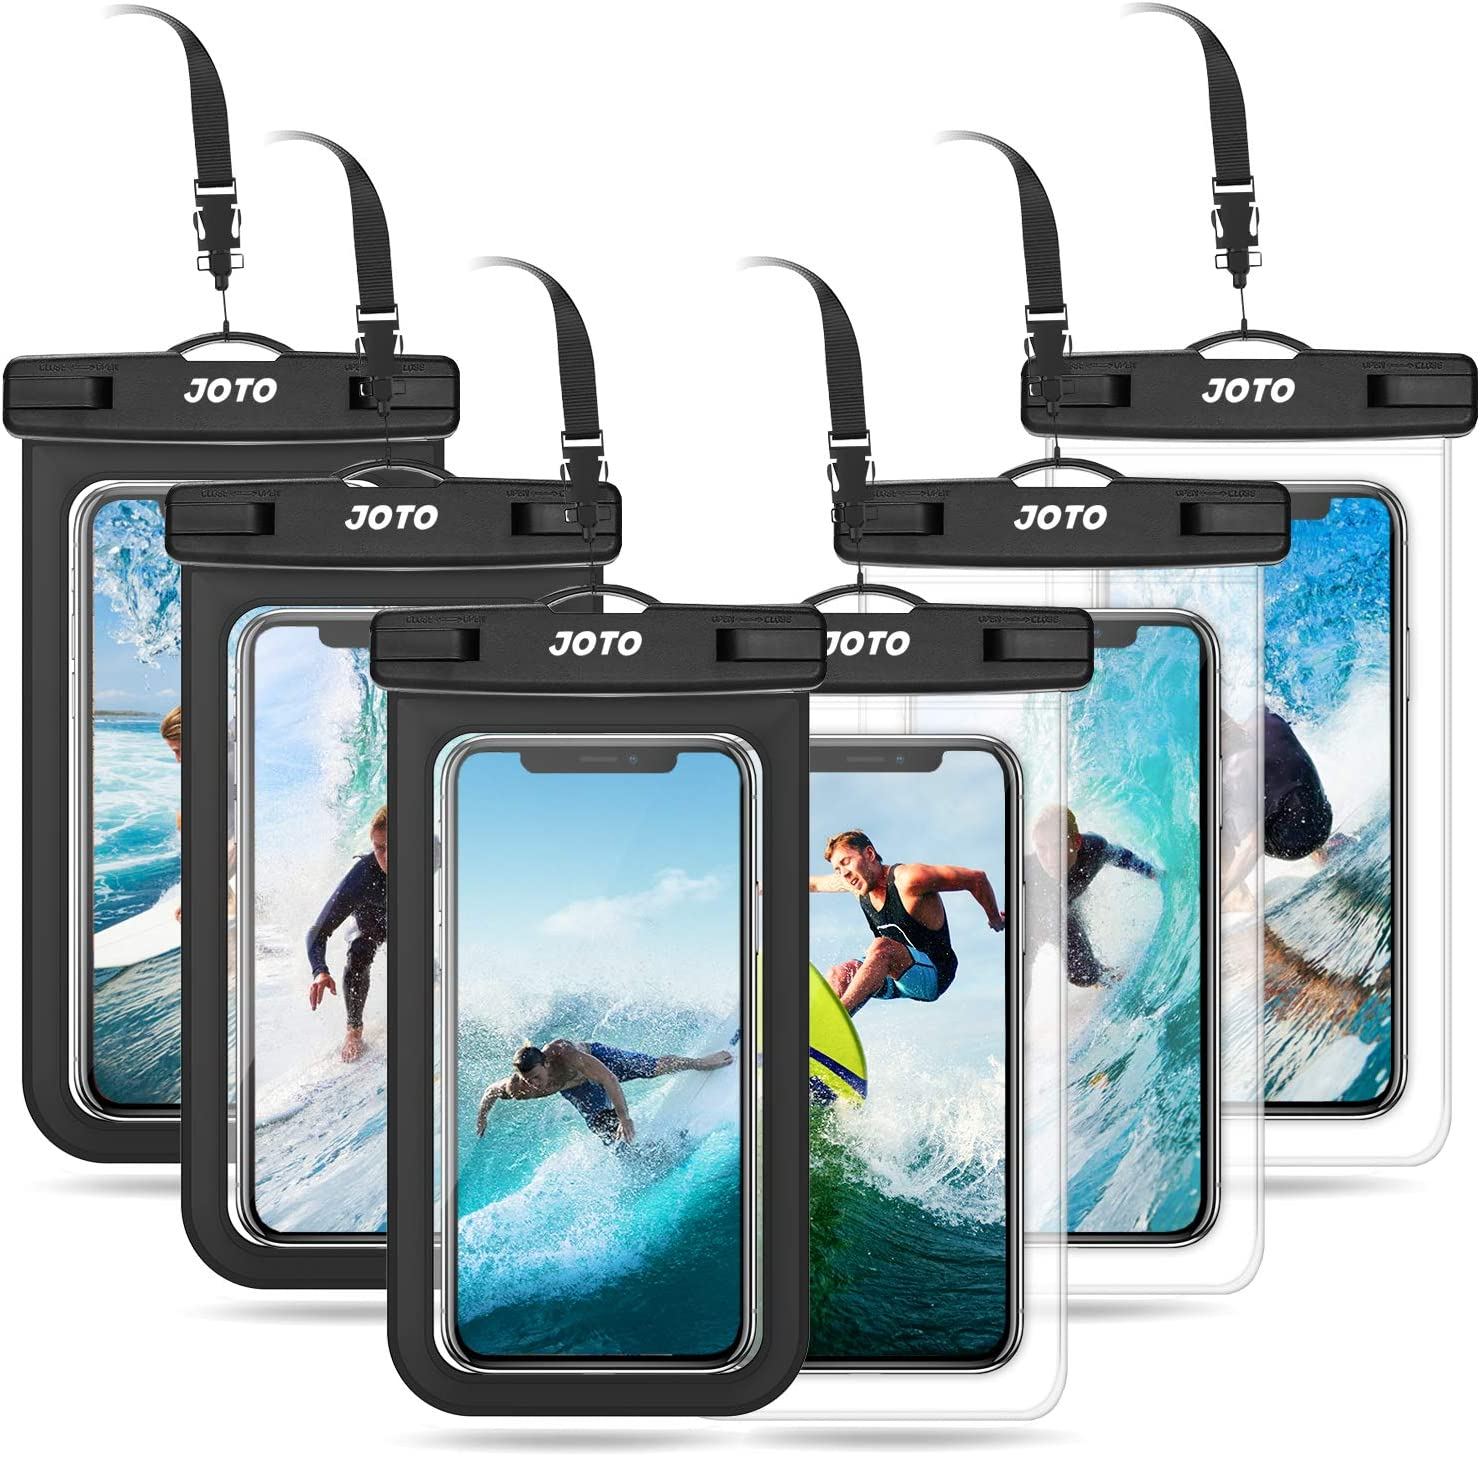 JOTO Universal Waterproof Pouch Cellphone Dry Bag Case for iPhone 13 Pro Max Mini, 12 11 Pro Xs Max XR XS X 8 7 6S Plus, Galaxy S10 S9/S9+/S8/S8+/Note 10+ 9, Pixel 4 XL up to 7